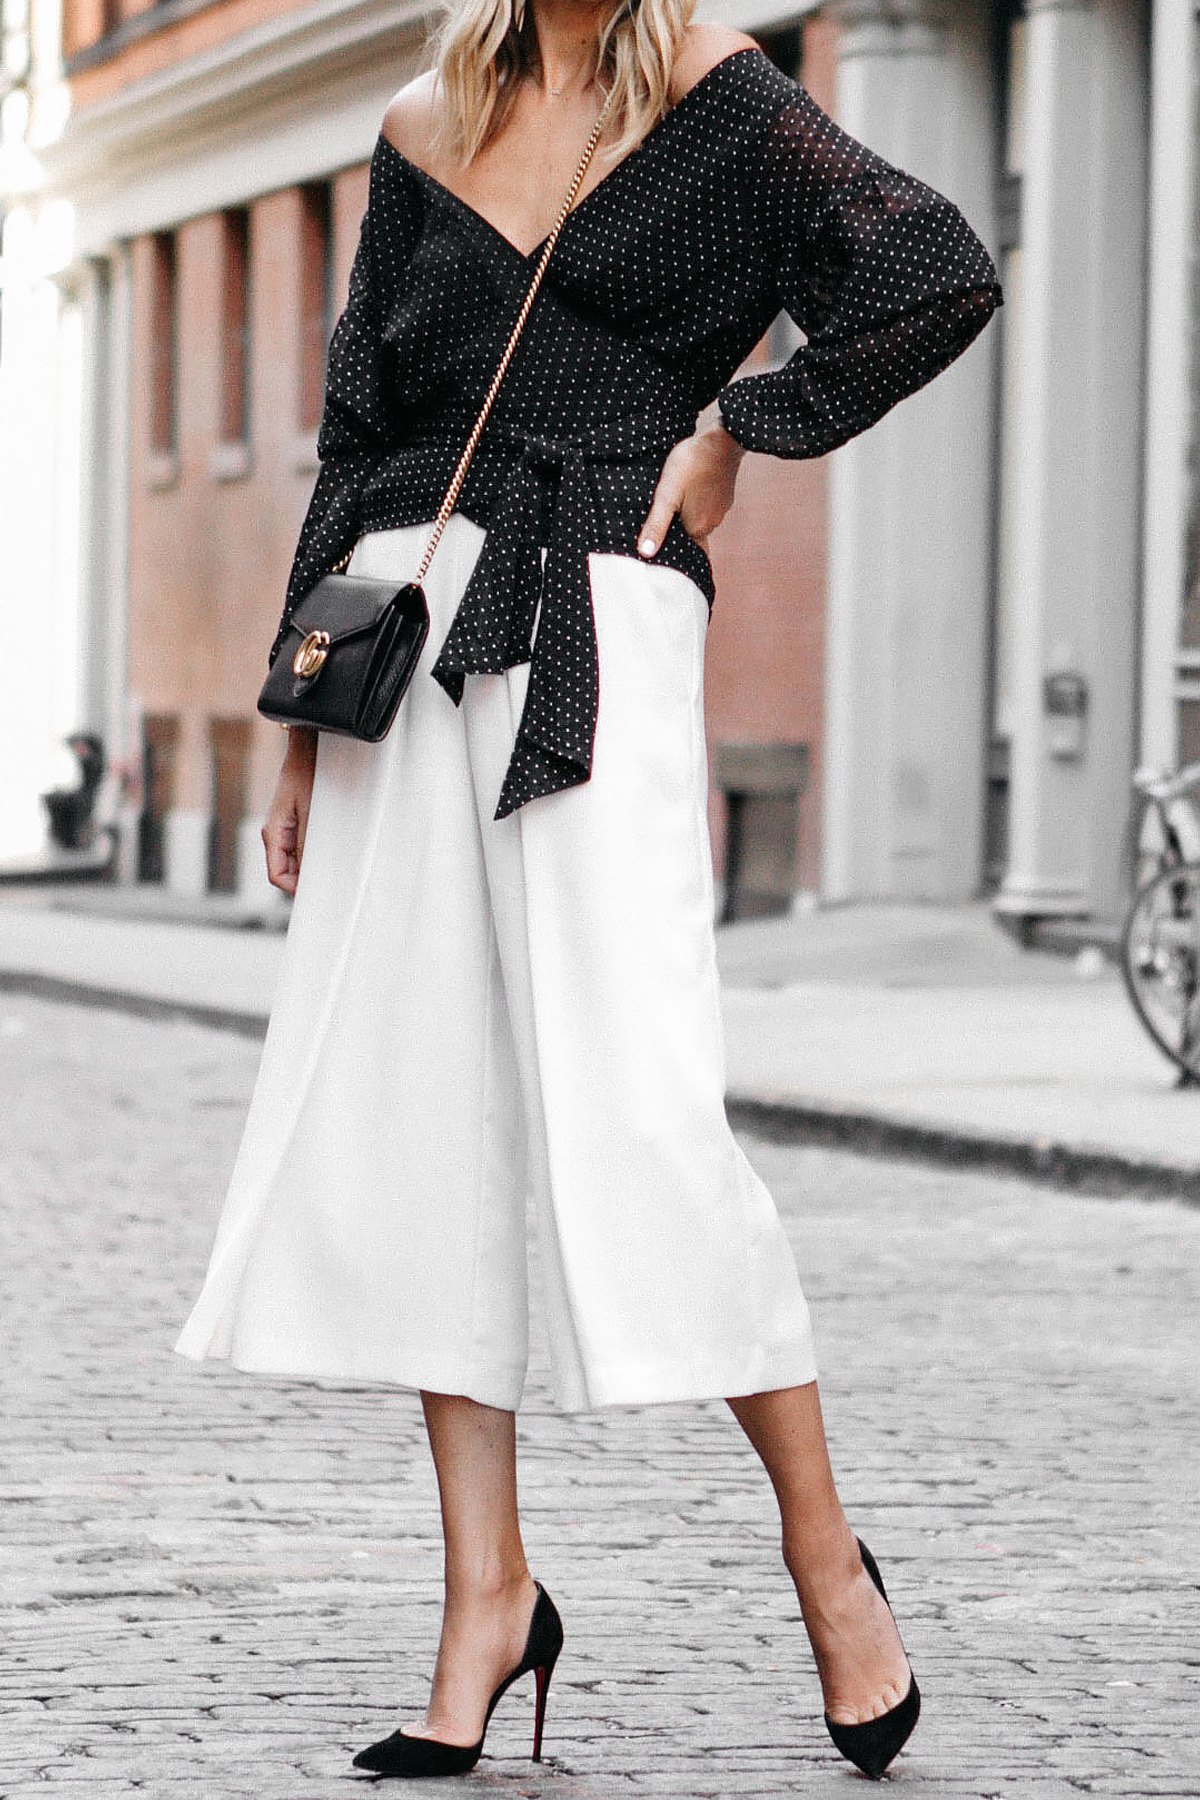 Club Monaco Black Wrap Top White Culottes Gucci Marmont Handbag Christian Louboutin Black Pumps Fashion Jackson Dallas Blogger Fashion Blogger Street Style NYFW